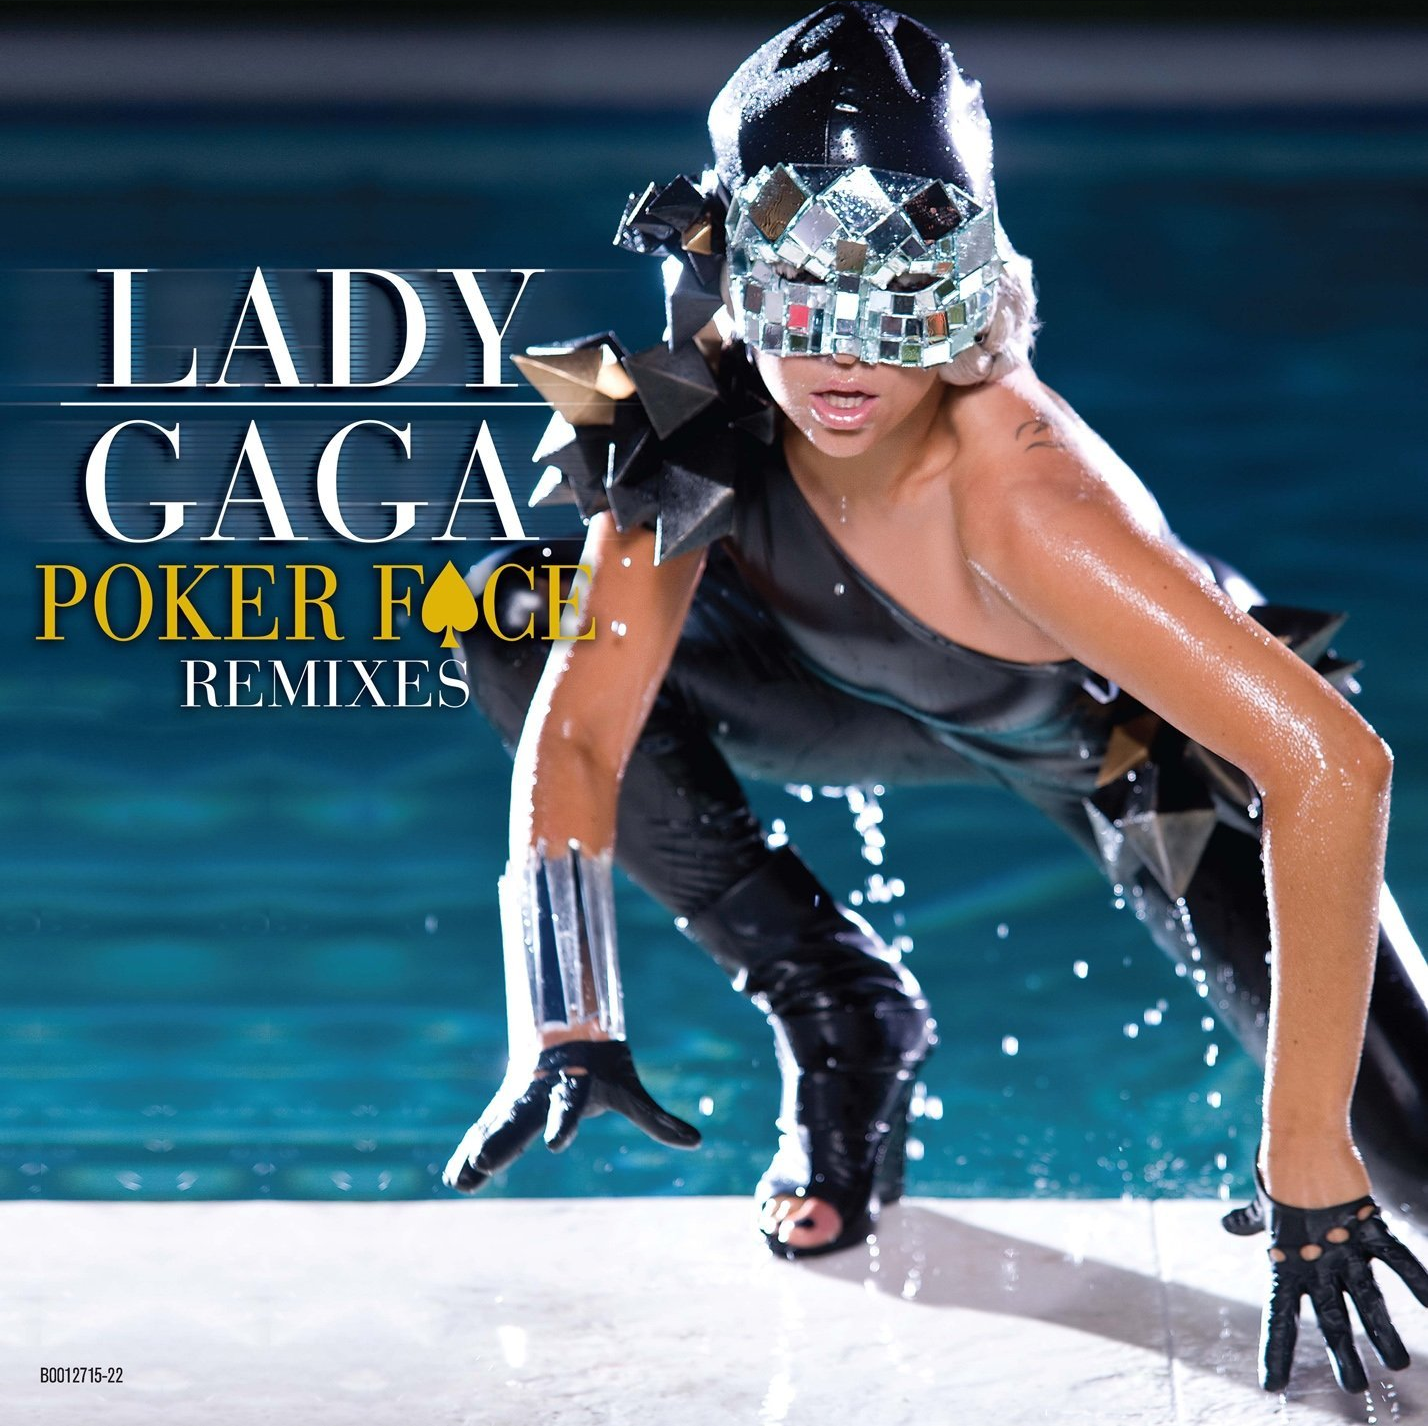 Lady gaga poker face space cowboy remix